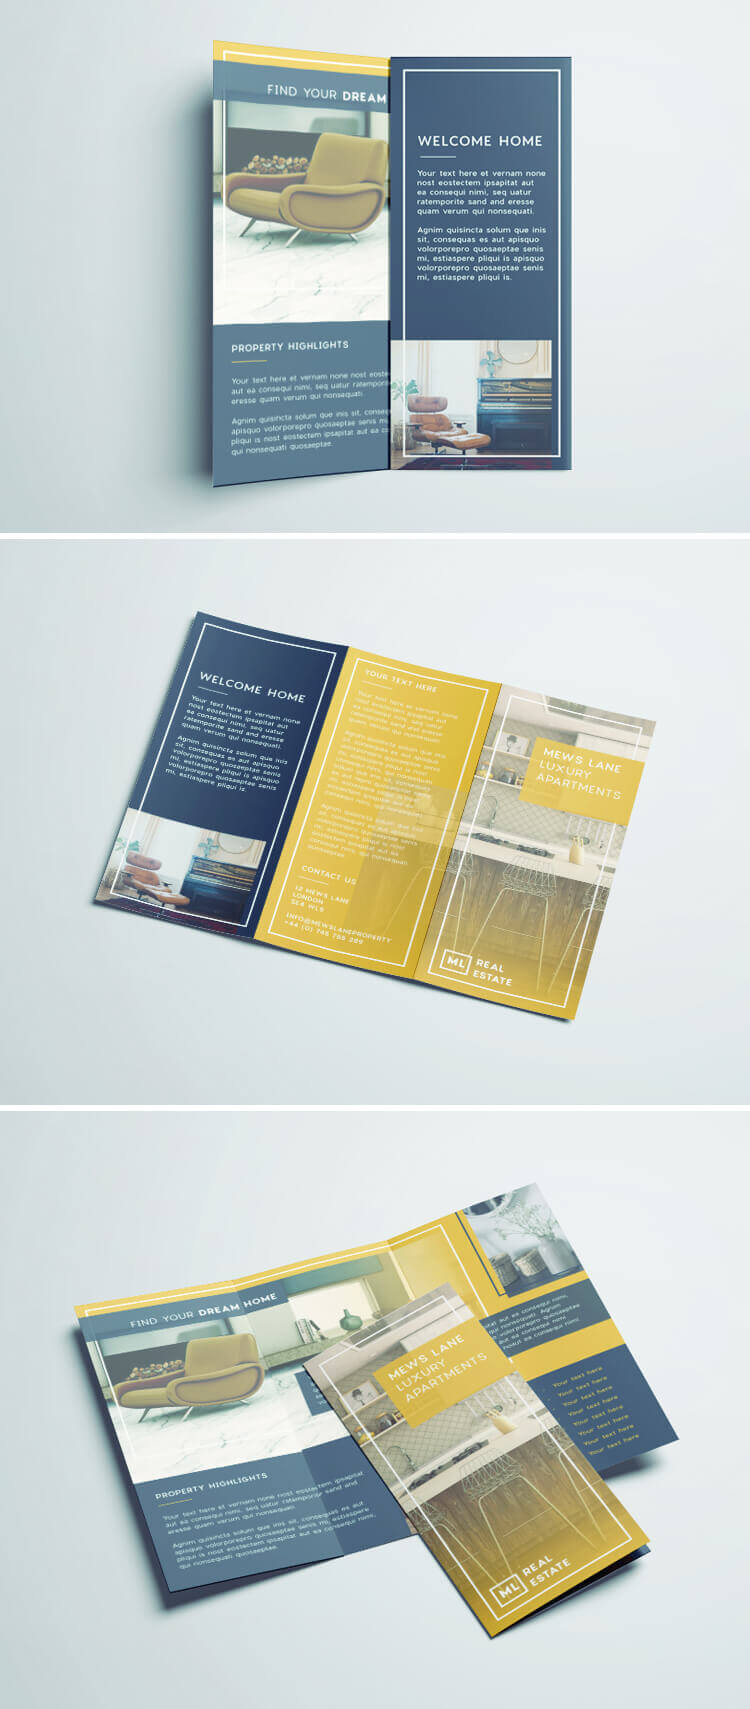 Tri Fold Brochure | Free Indesign Template Inside Adobe Indesign Tri Fold Brochure Template